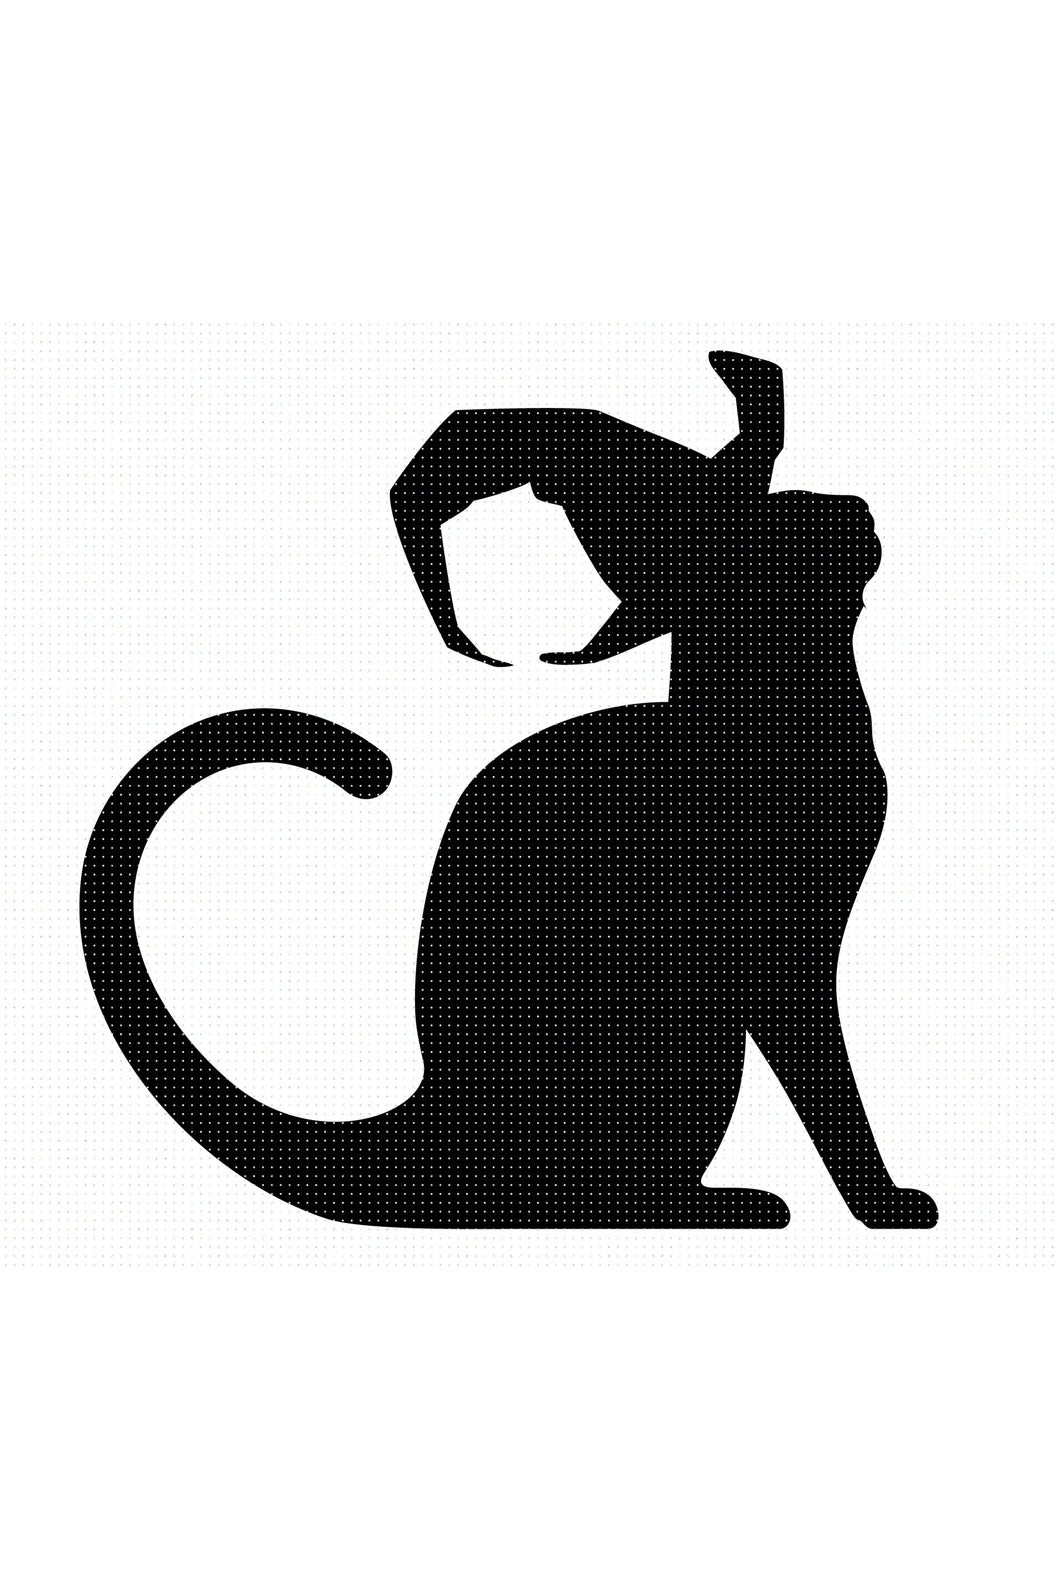 FREE black cat wearing a witch's hat for Personal Use SVG, PNG clipart, DXF, clipart, EPS, vector cut file instant download